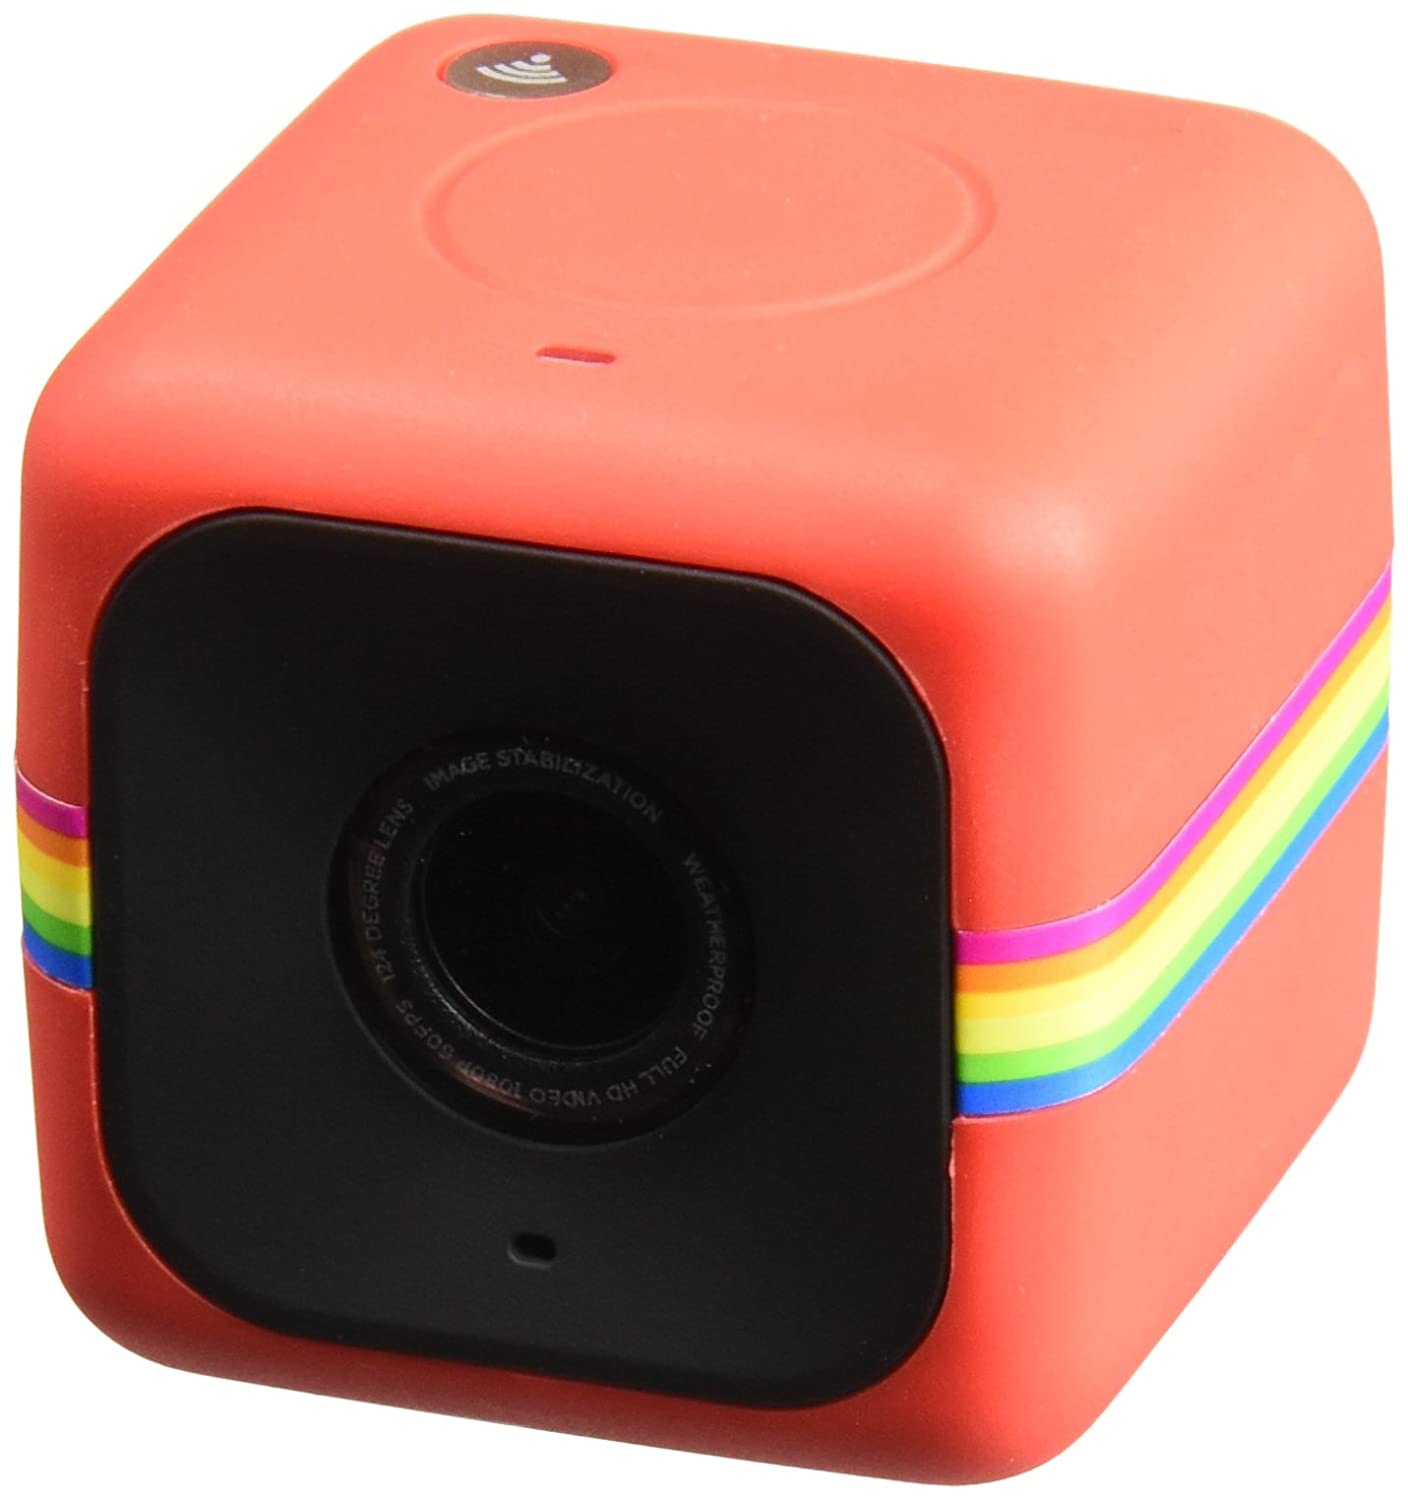 Polaroid Cube+ Live Streaming 1440p Mini Lifestyle Action Camera with Wi-Fi & Image Stabilization (Blue) POLCPBL-55